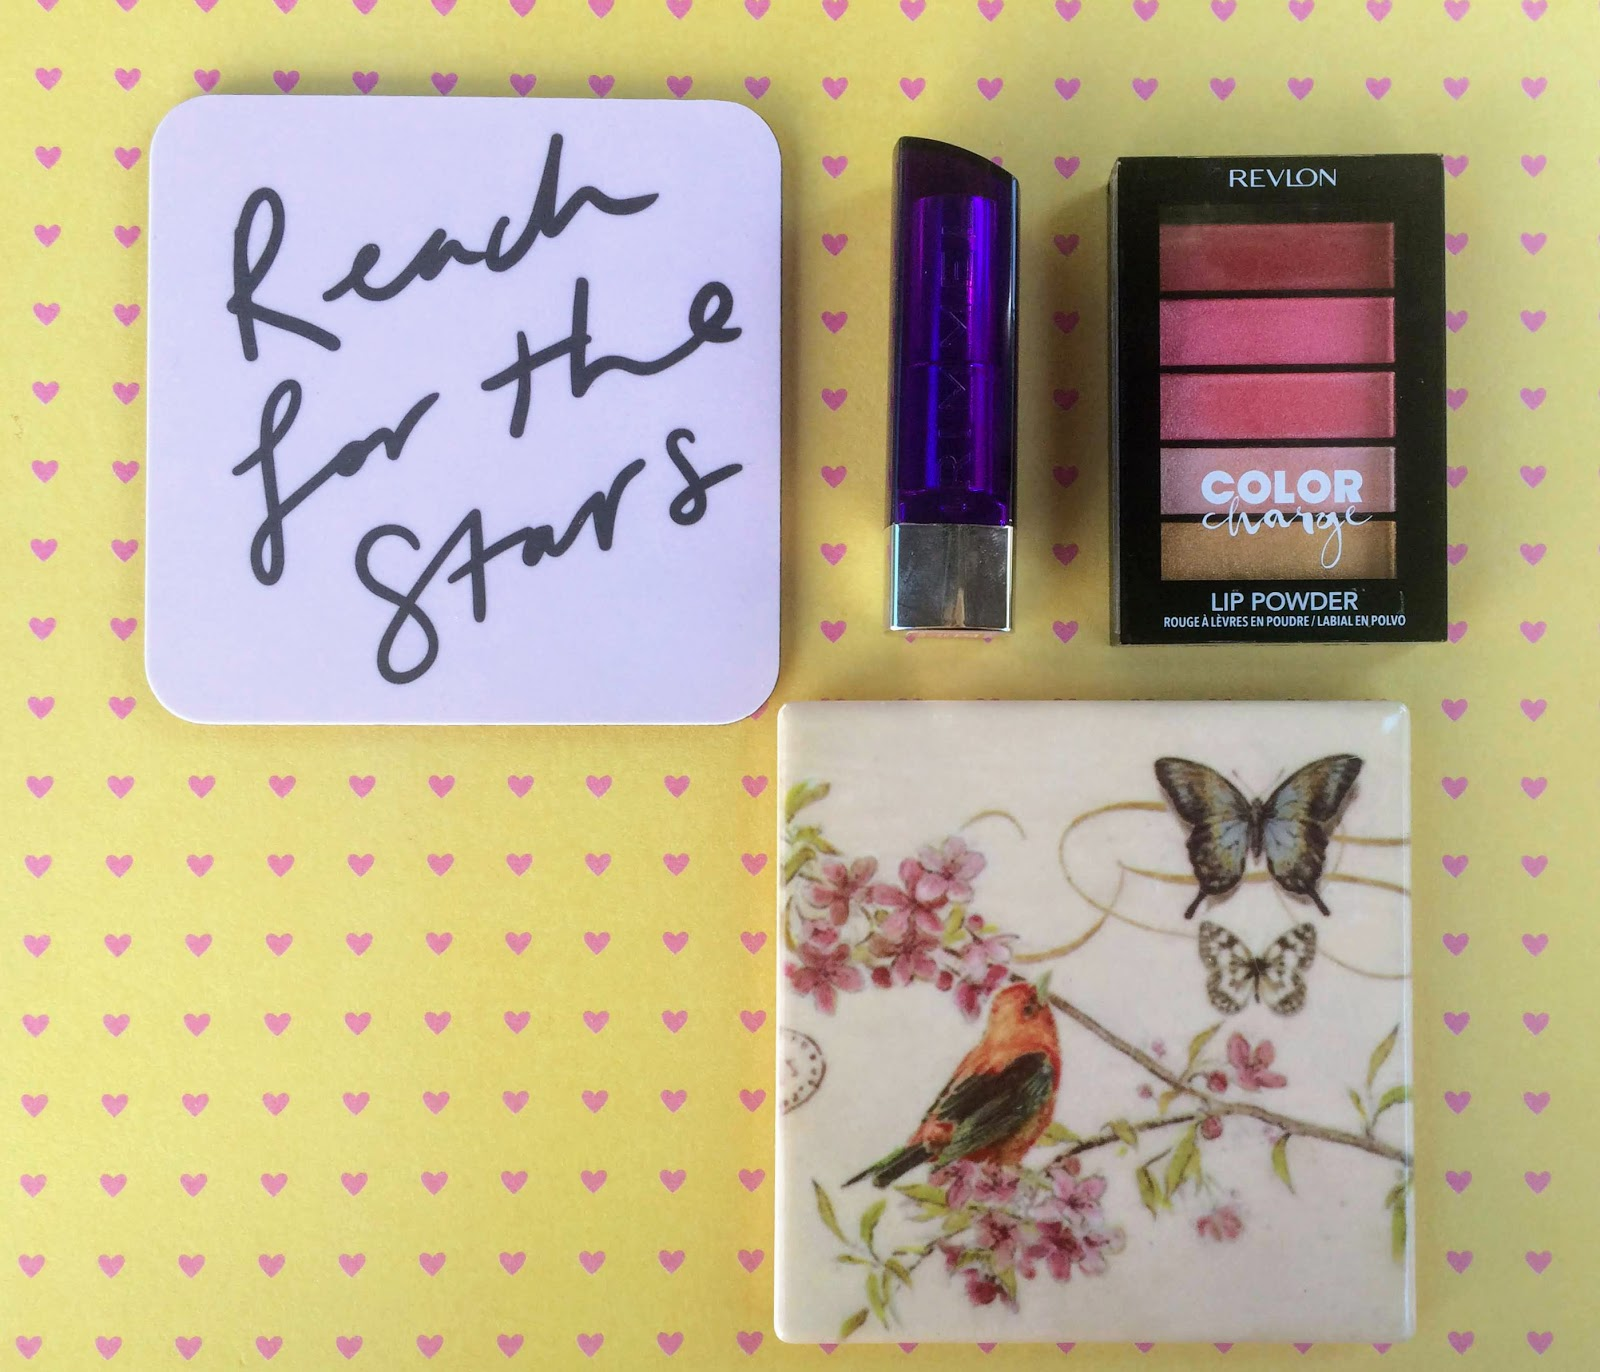 Rimmel lipstick, old english prints coaster, revlon Lip powder